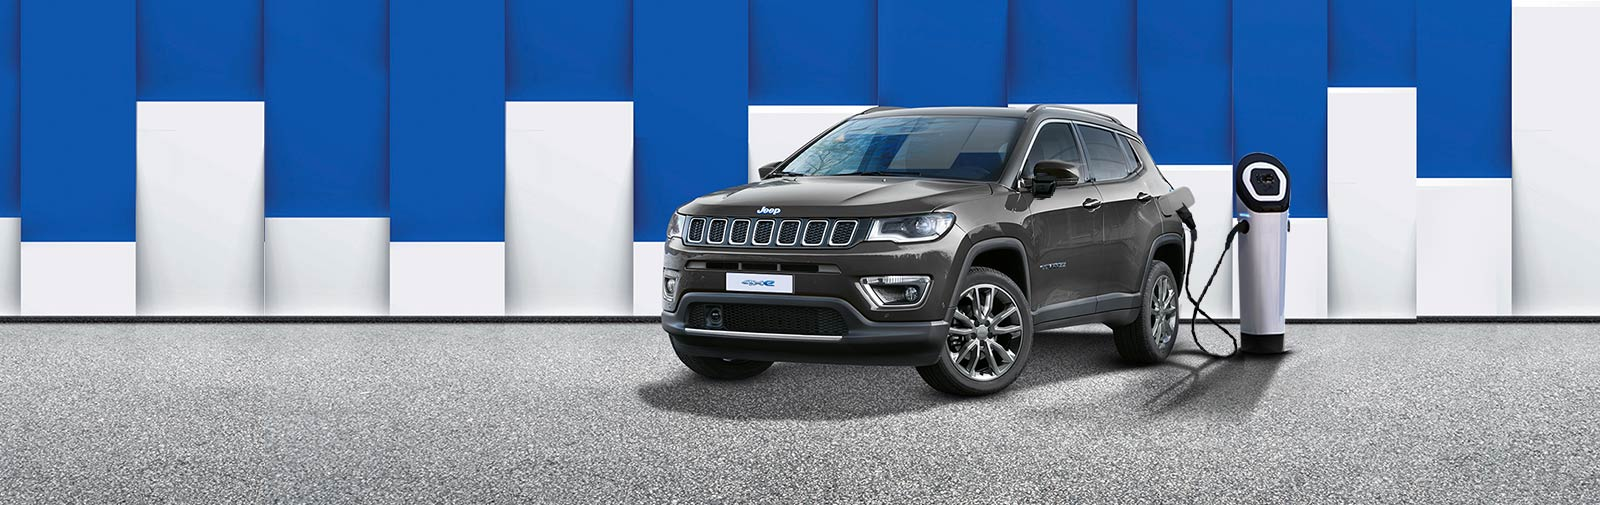 DER JEEP<sub>&reg;</sub> COMPASS 4xe PLUG-IN-HYBRID